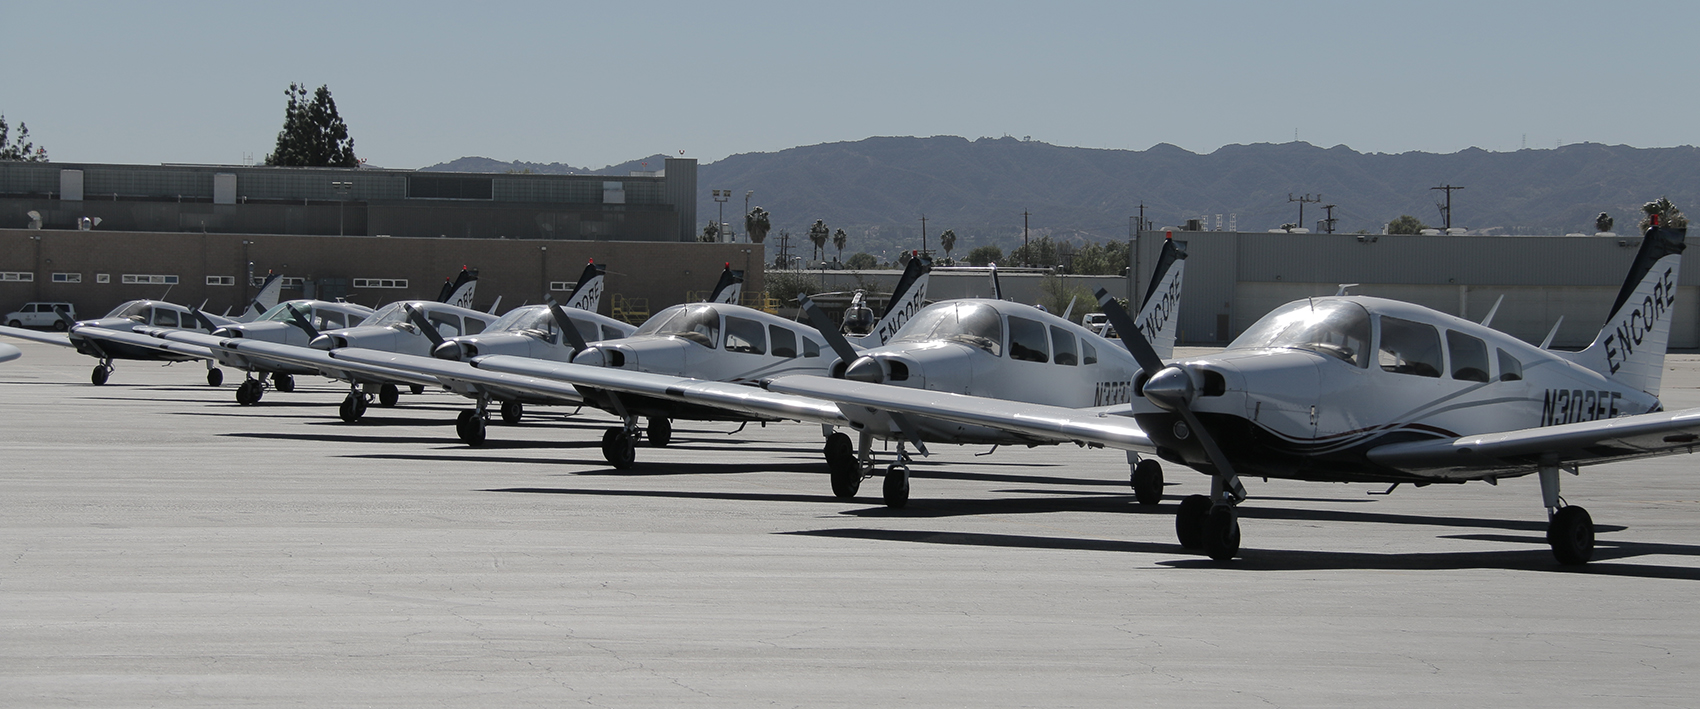 Flight School Van Nuys Airport Los Angeles